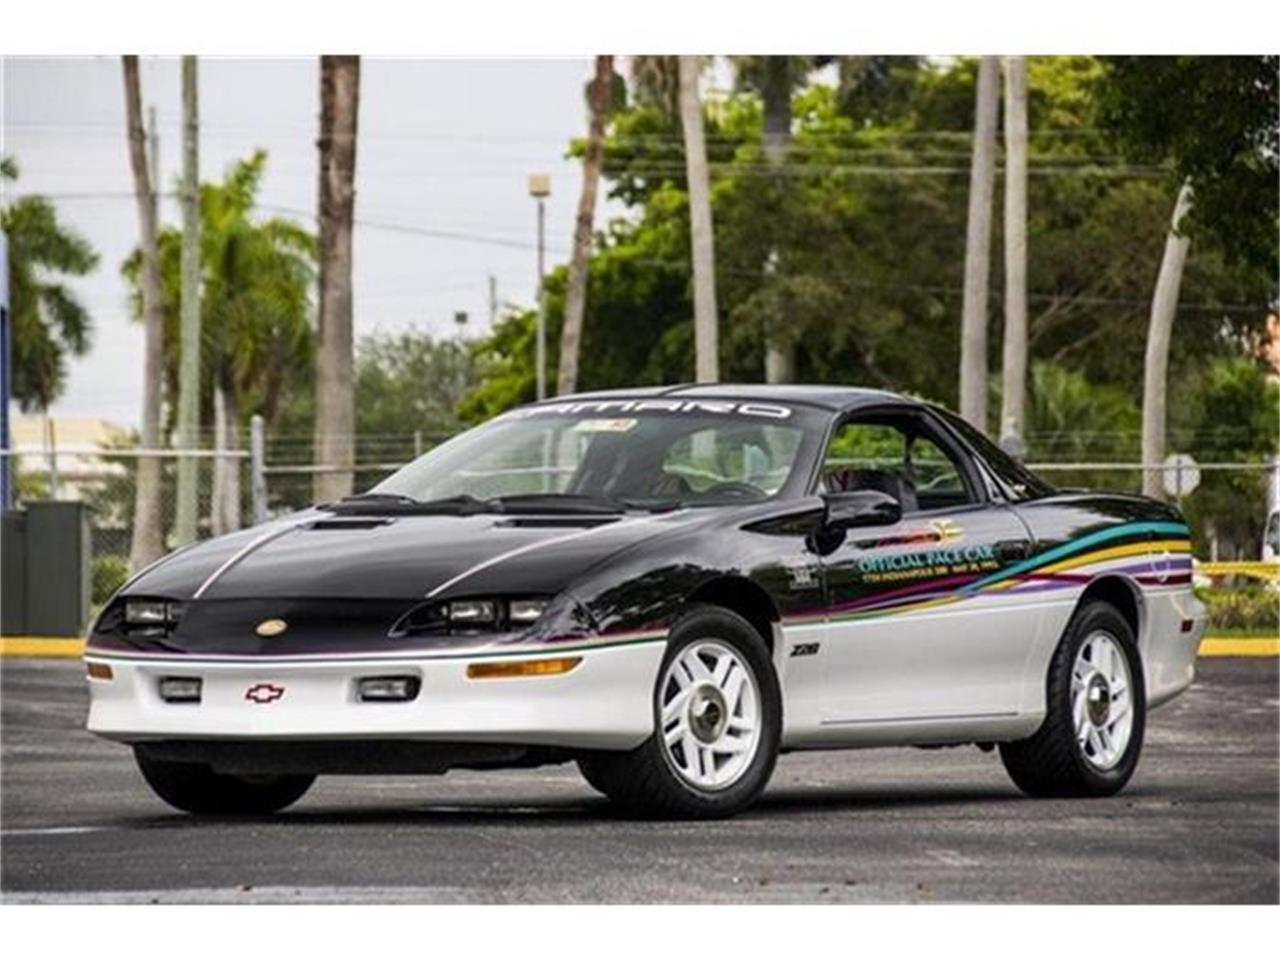 Large Picture of '93 Camaro located in Miami Florida - $28,900.00 - DHJE